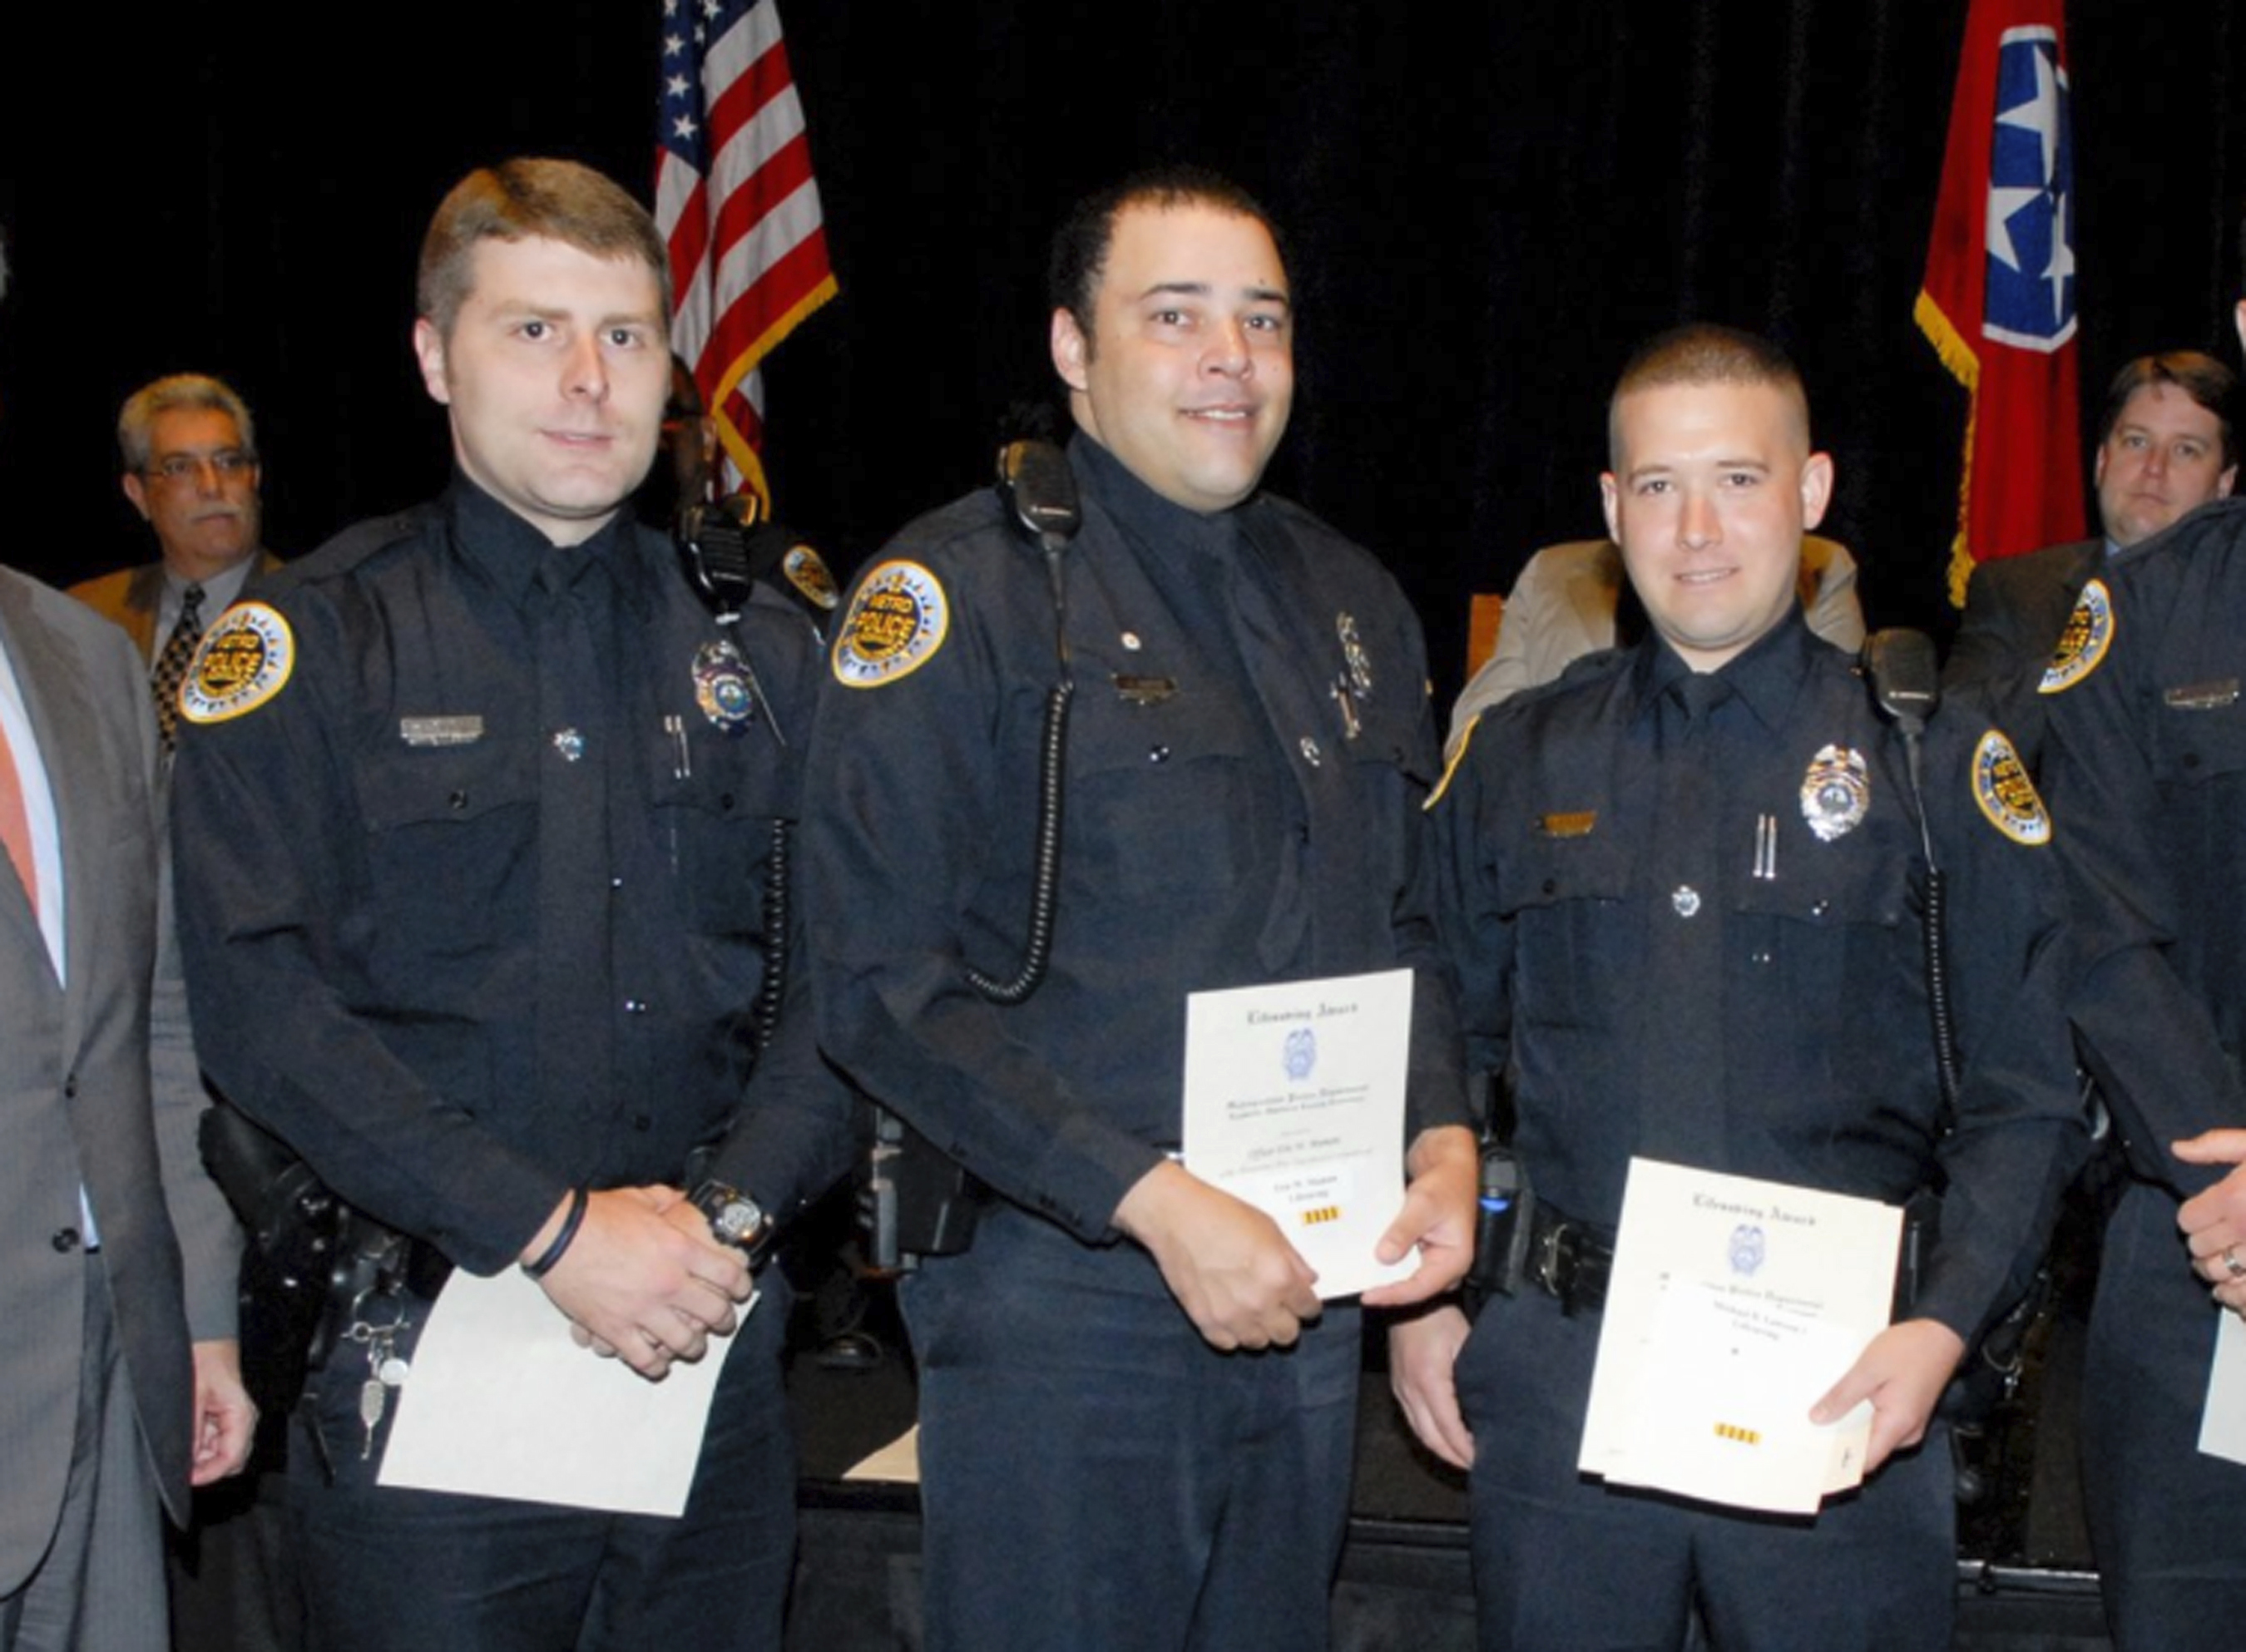 Metro Police Department shows Officer Eric Mumaw (C) receiving the department's Lifesaving Award. (Metro Nashville Police Department via AP)